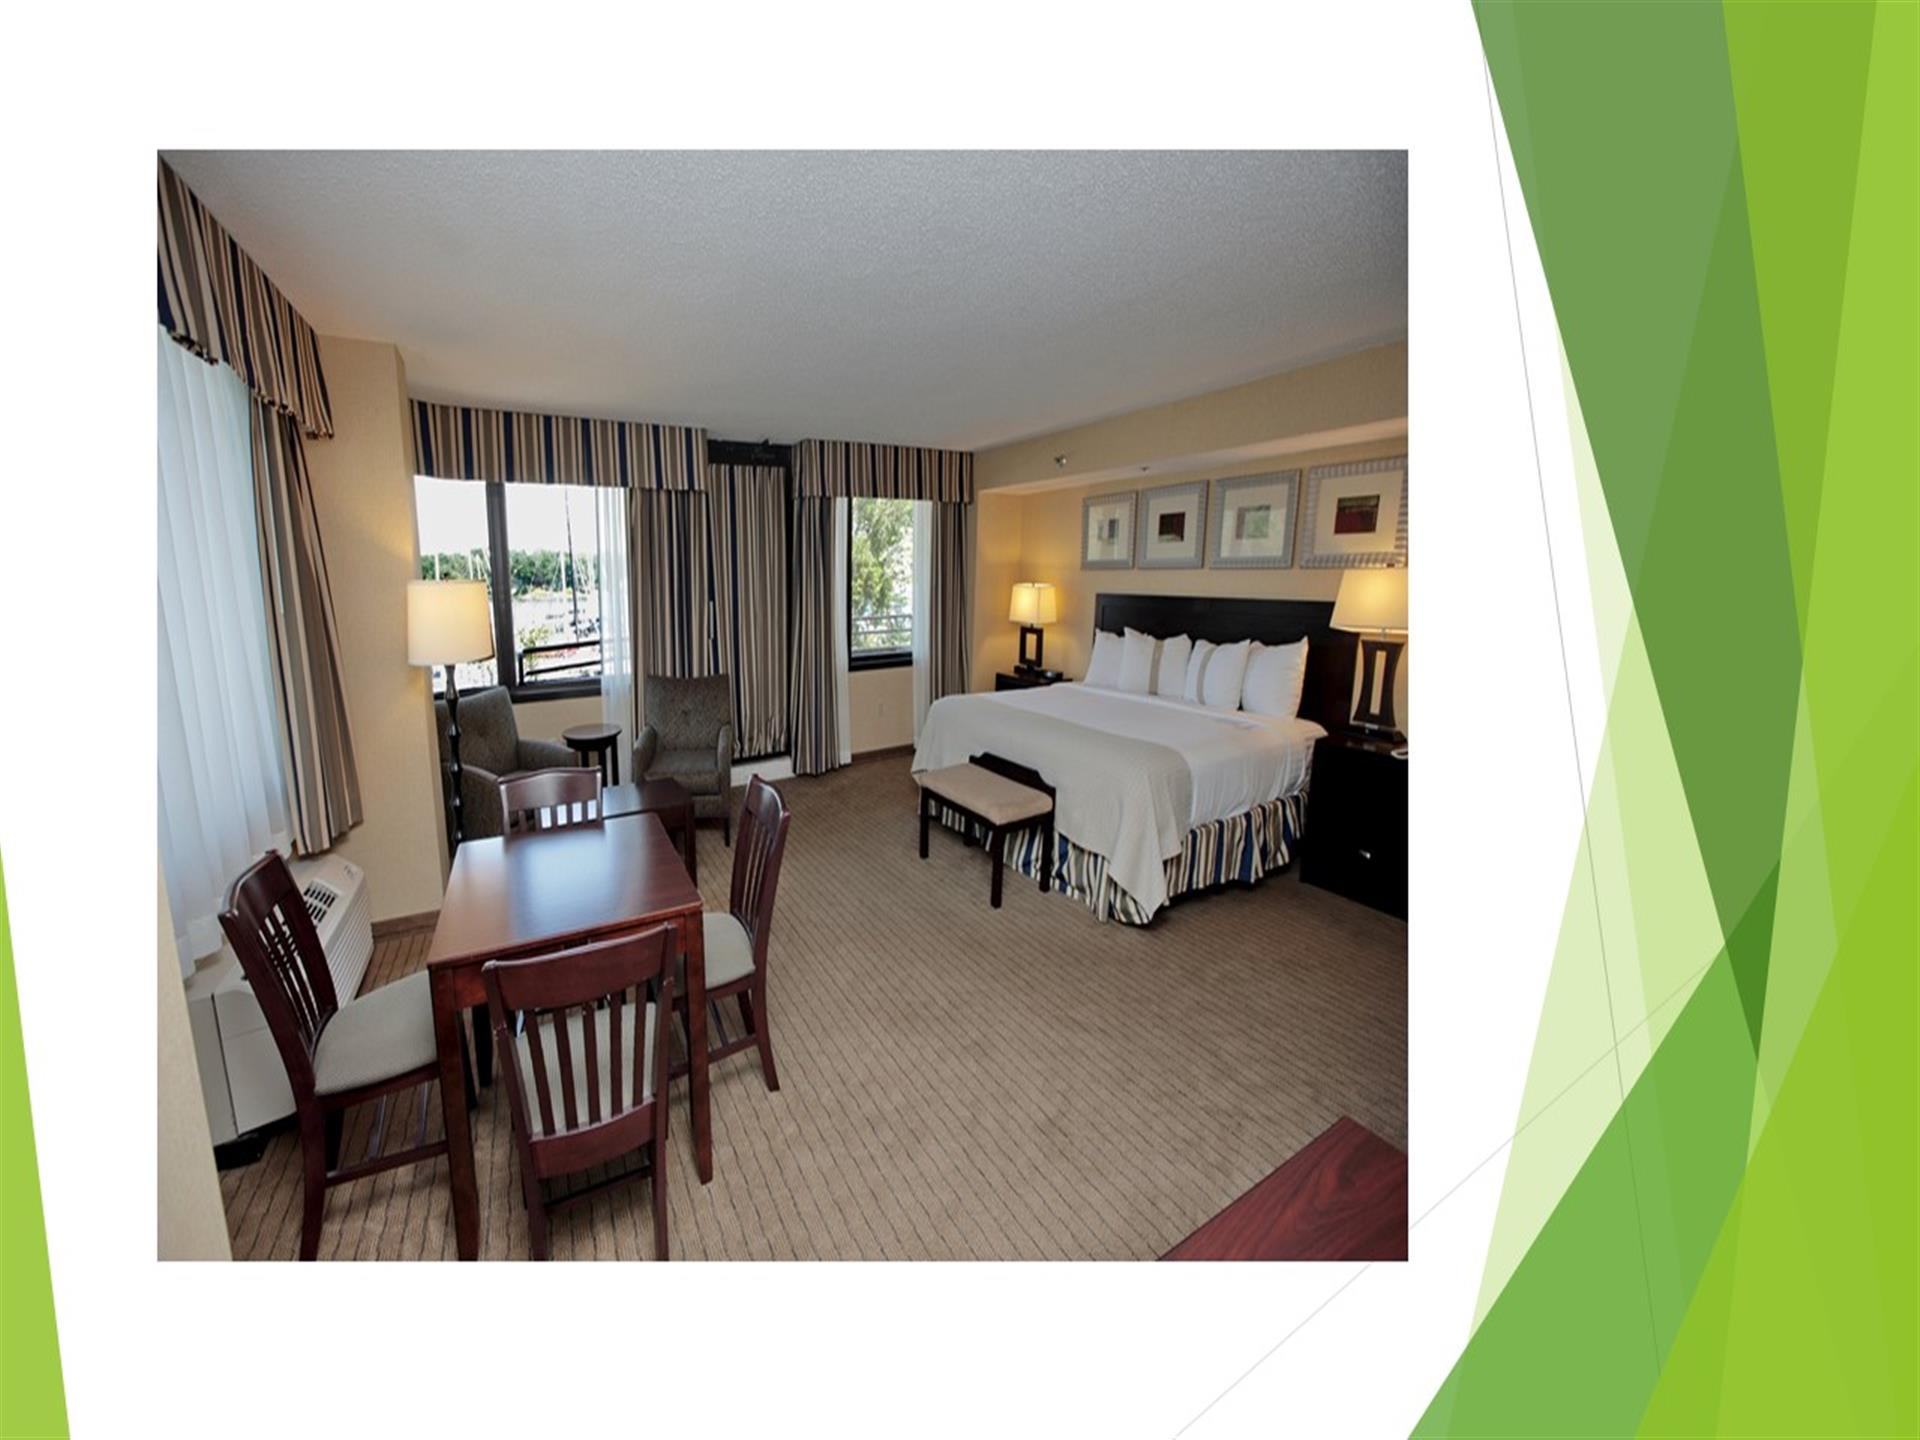 Hotel room showing king size bed, table and chairs, gray carpet, three windows